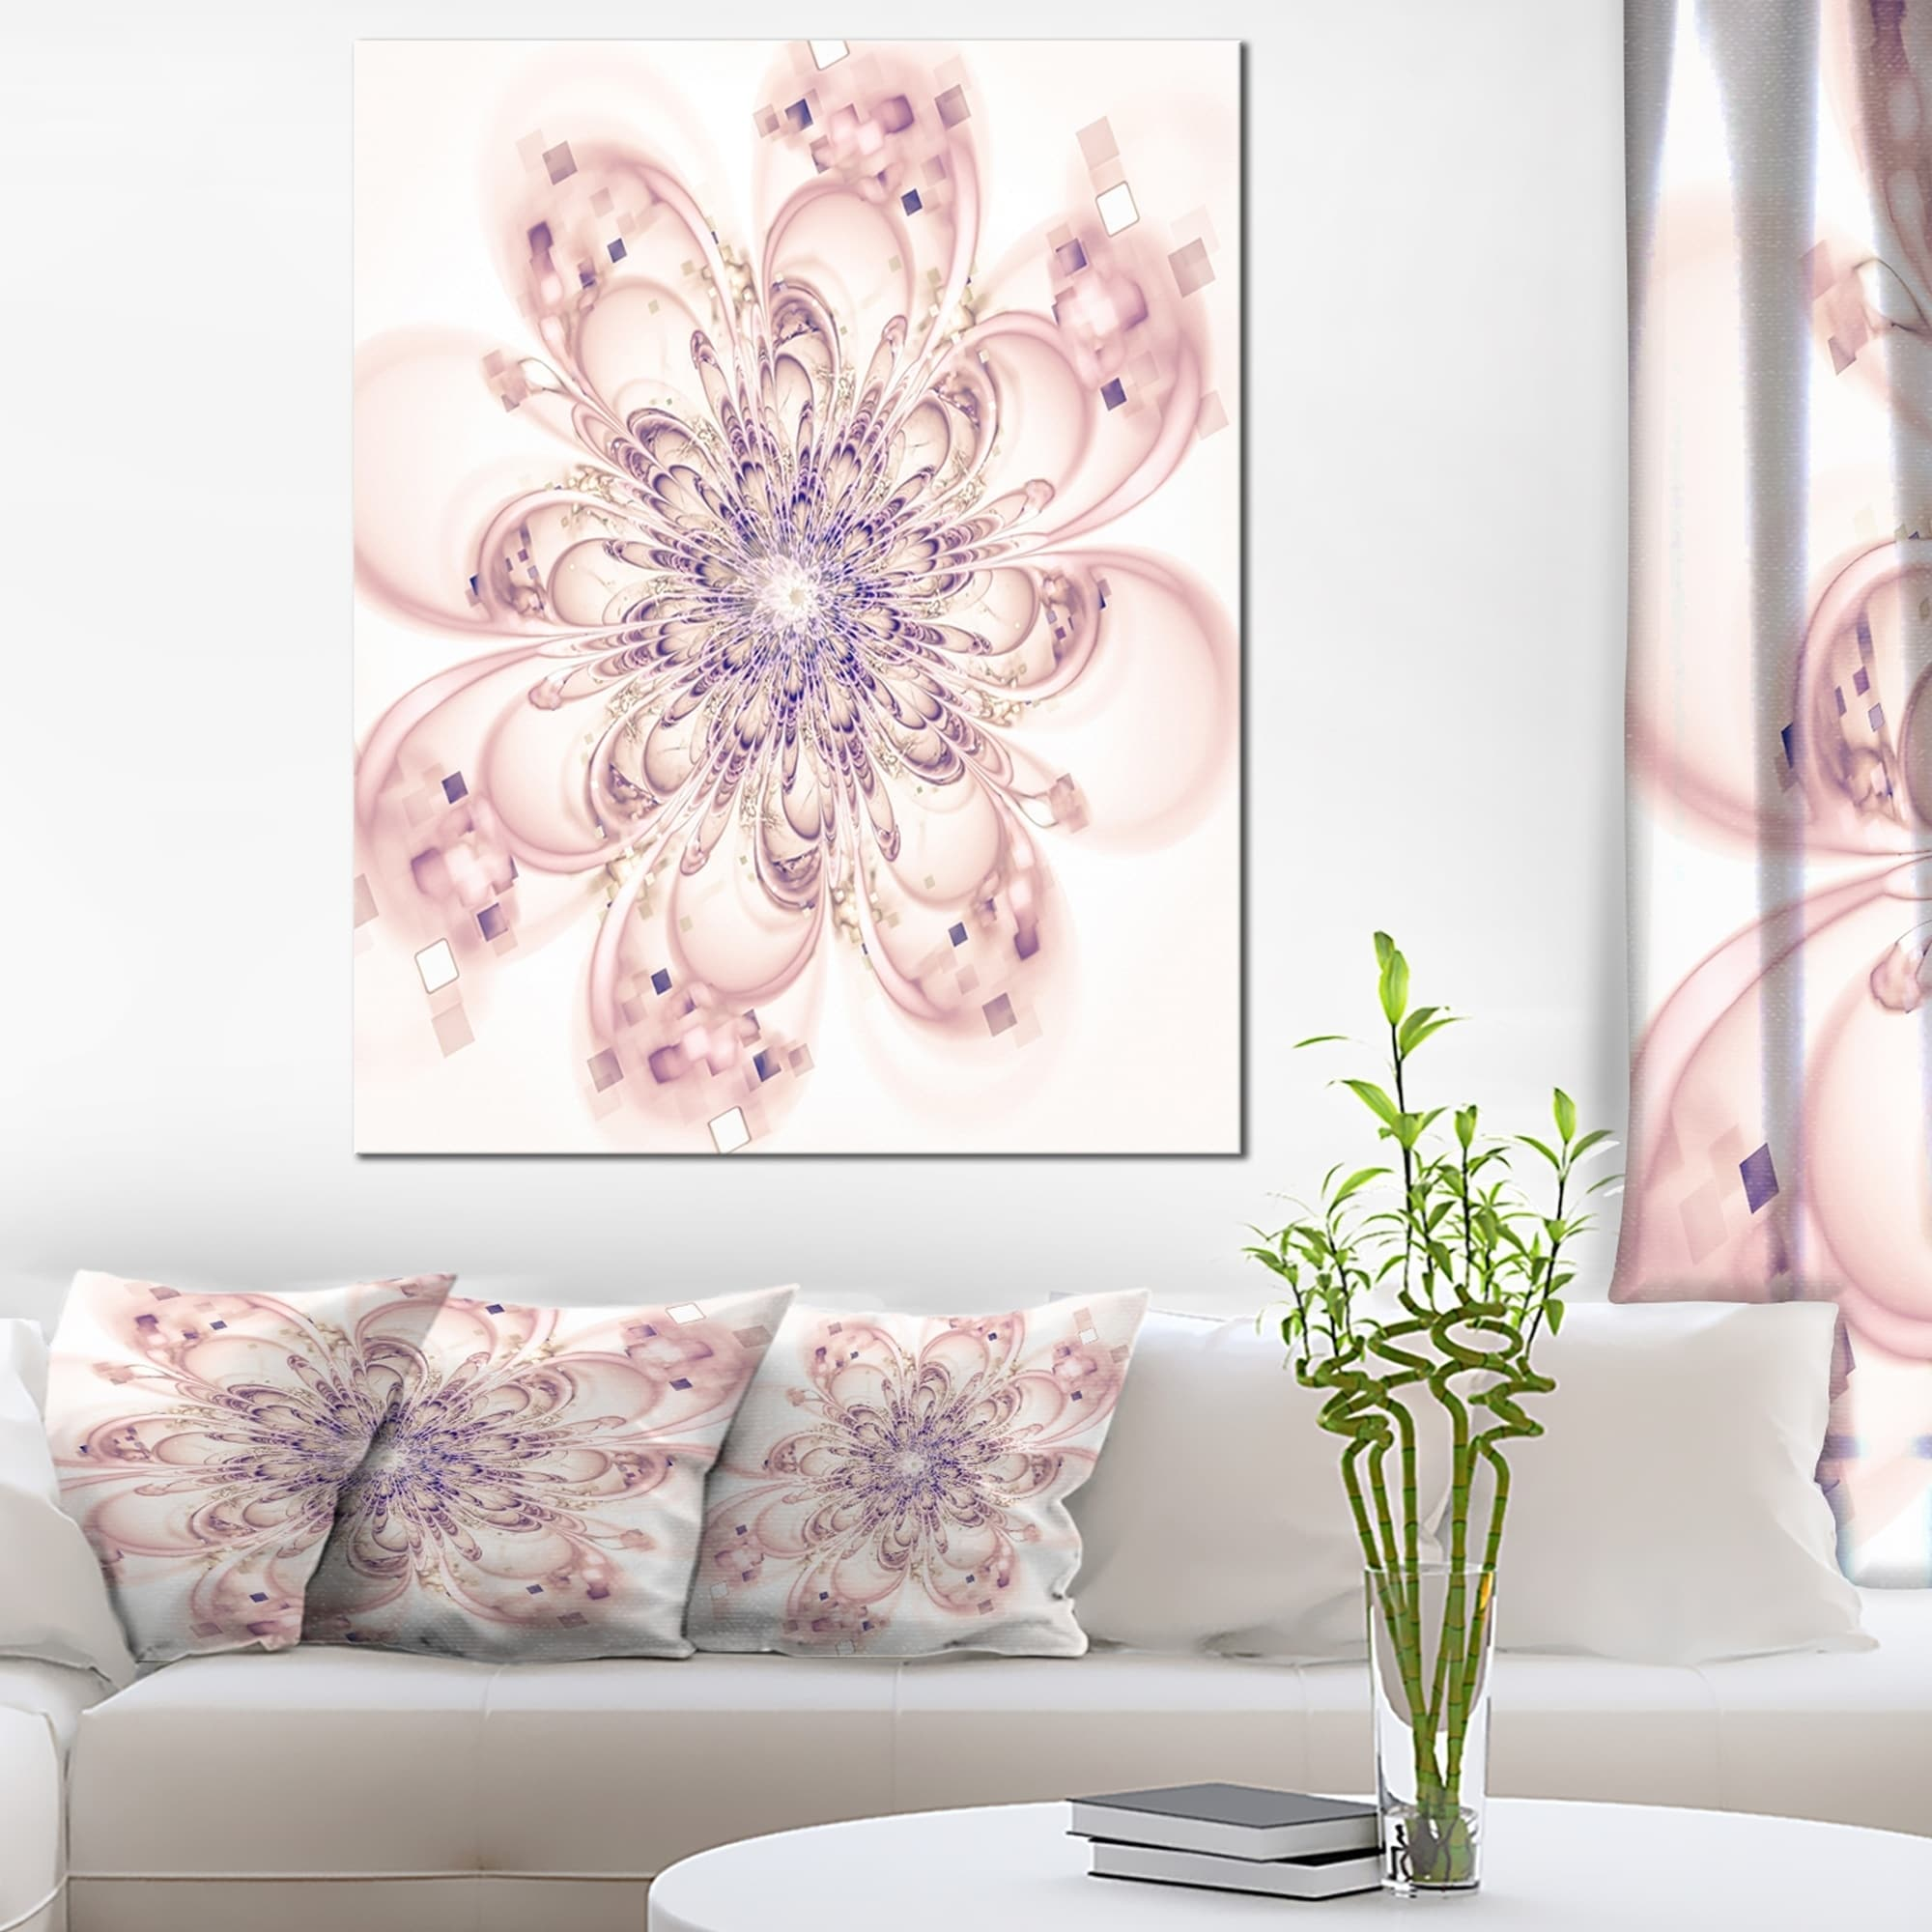 DESIGN ART Full Bloom Fractal Flower in Pink - Large Flower Canvas ...